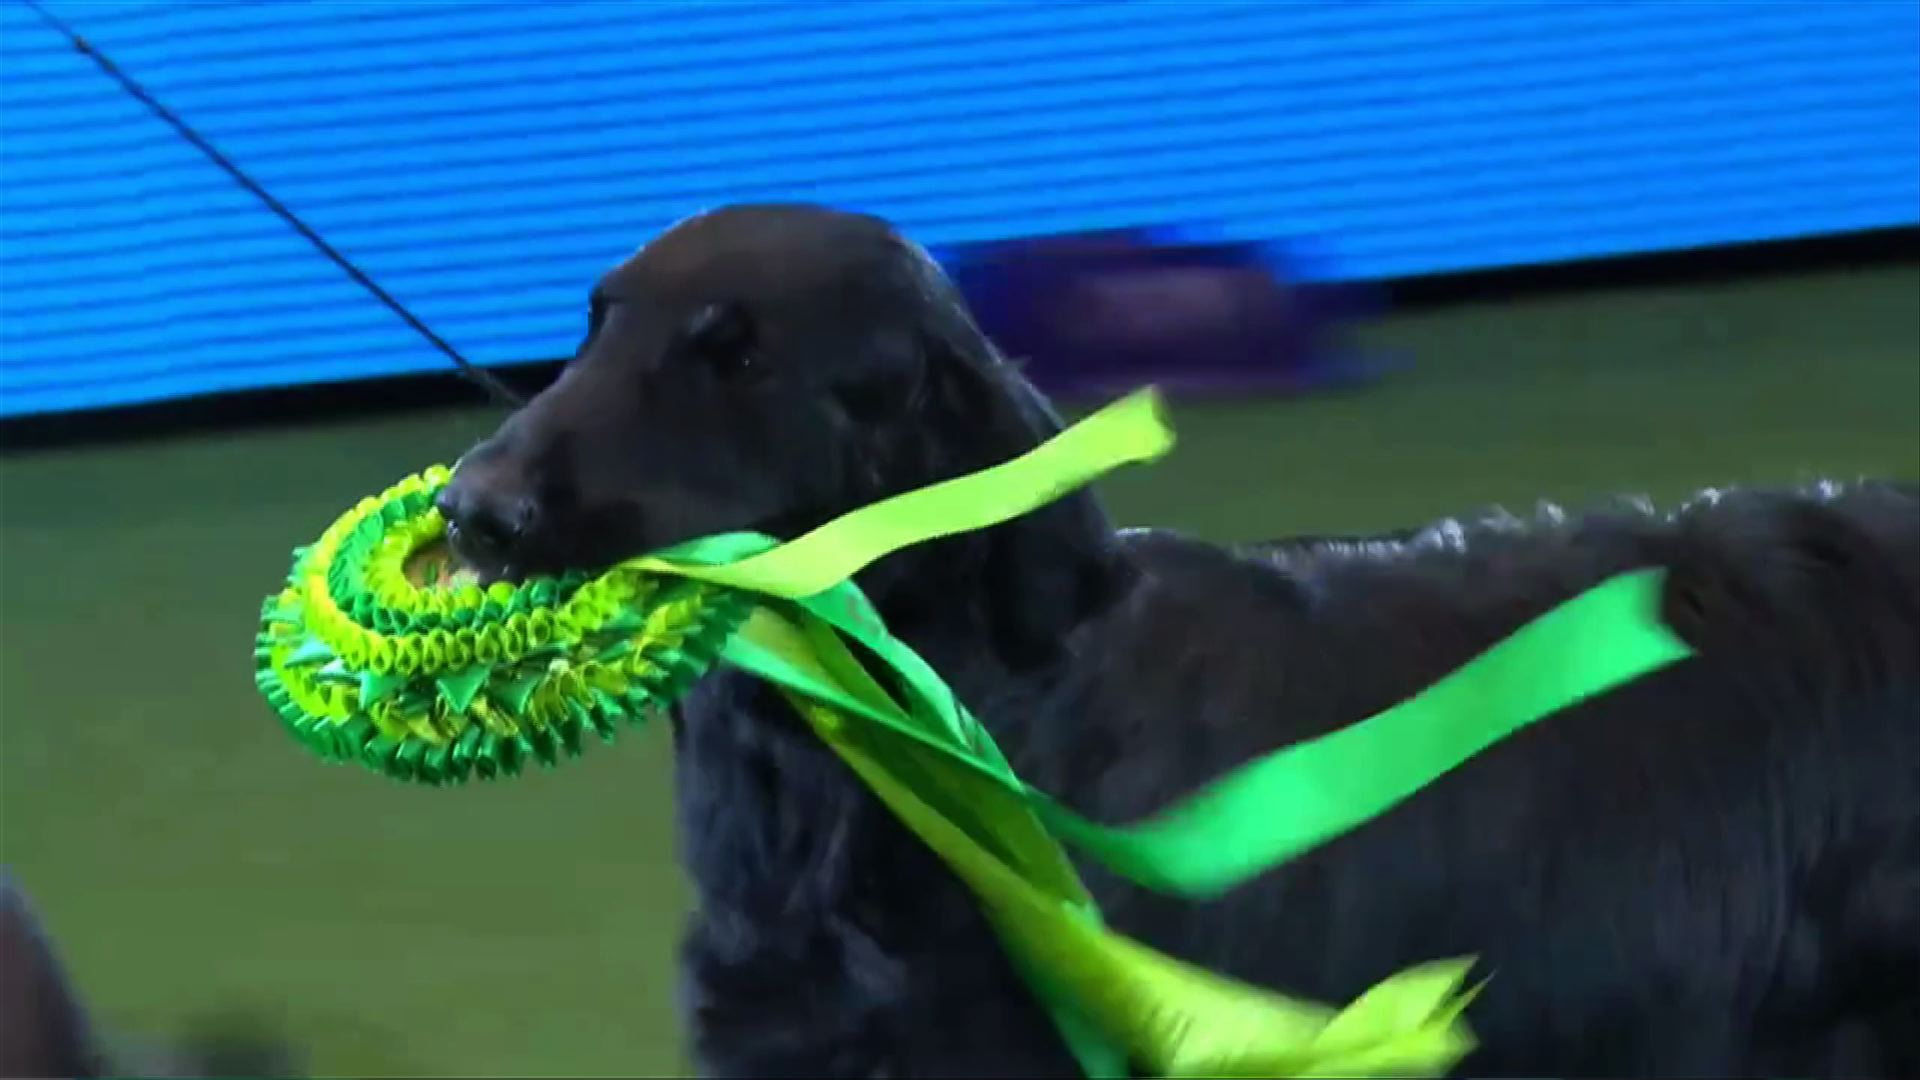 Watch: Around the Dog World - Crufts and Pawscars 2015